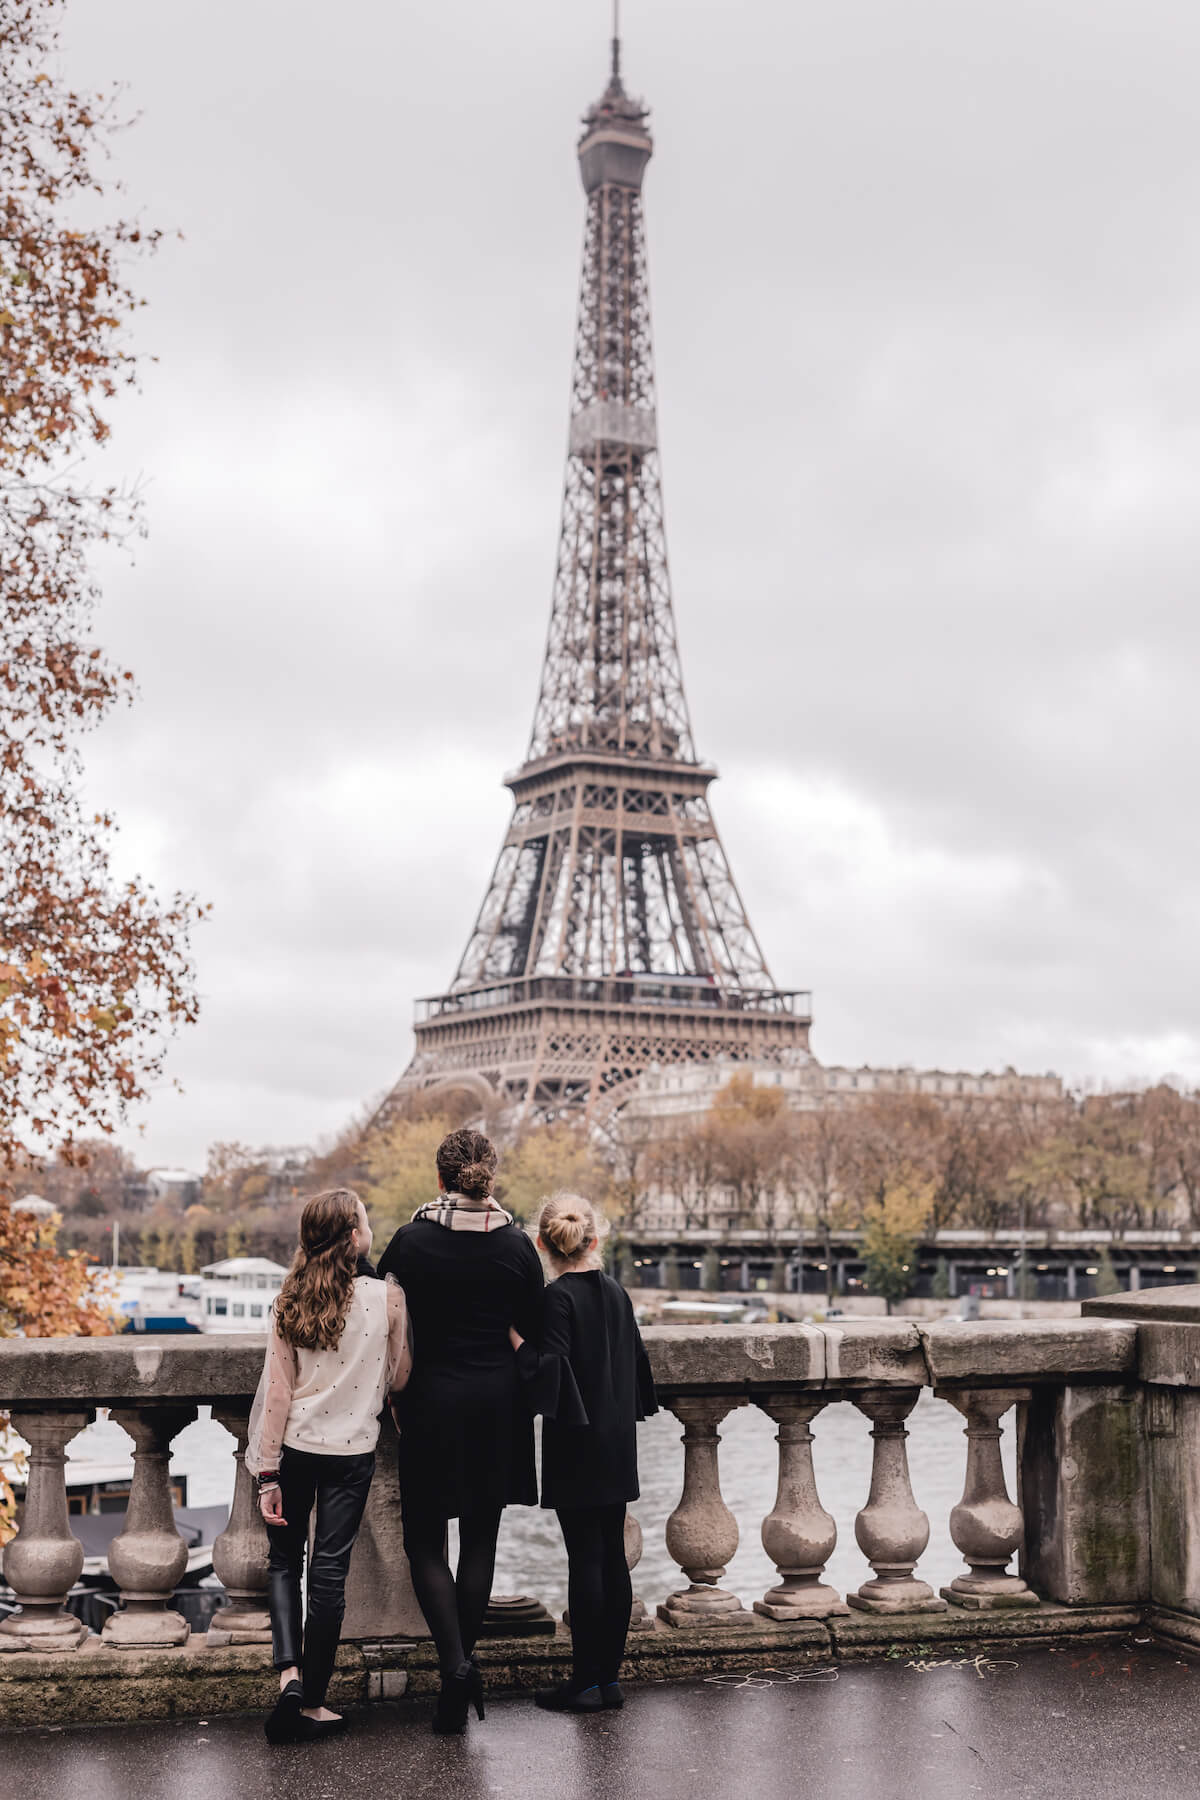 Mom and daughters in Paris France in front of the Eiffel Tower